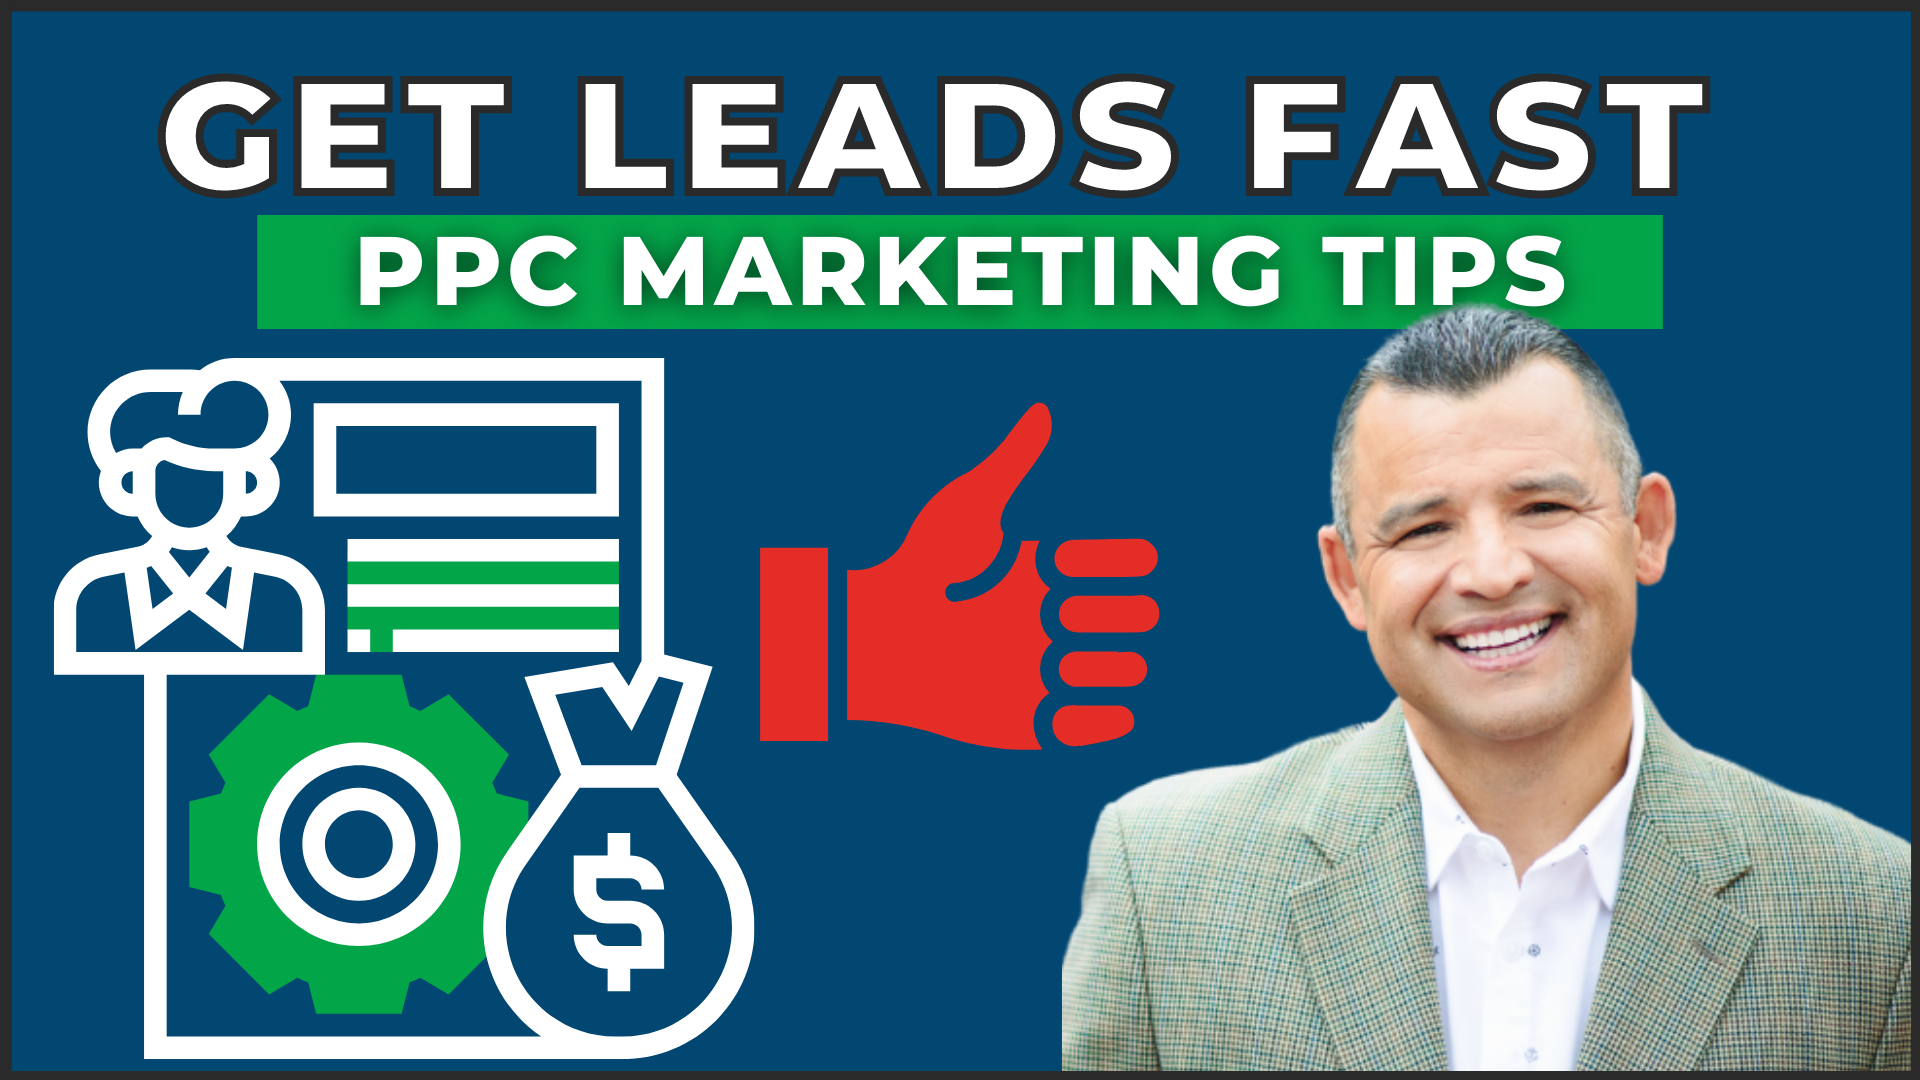 PPC Lead Generation Tips Get Leads Fast